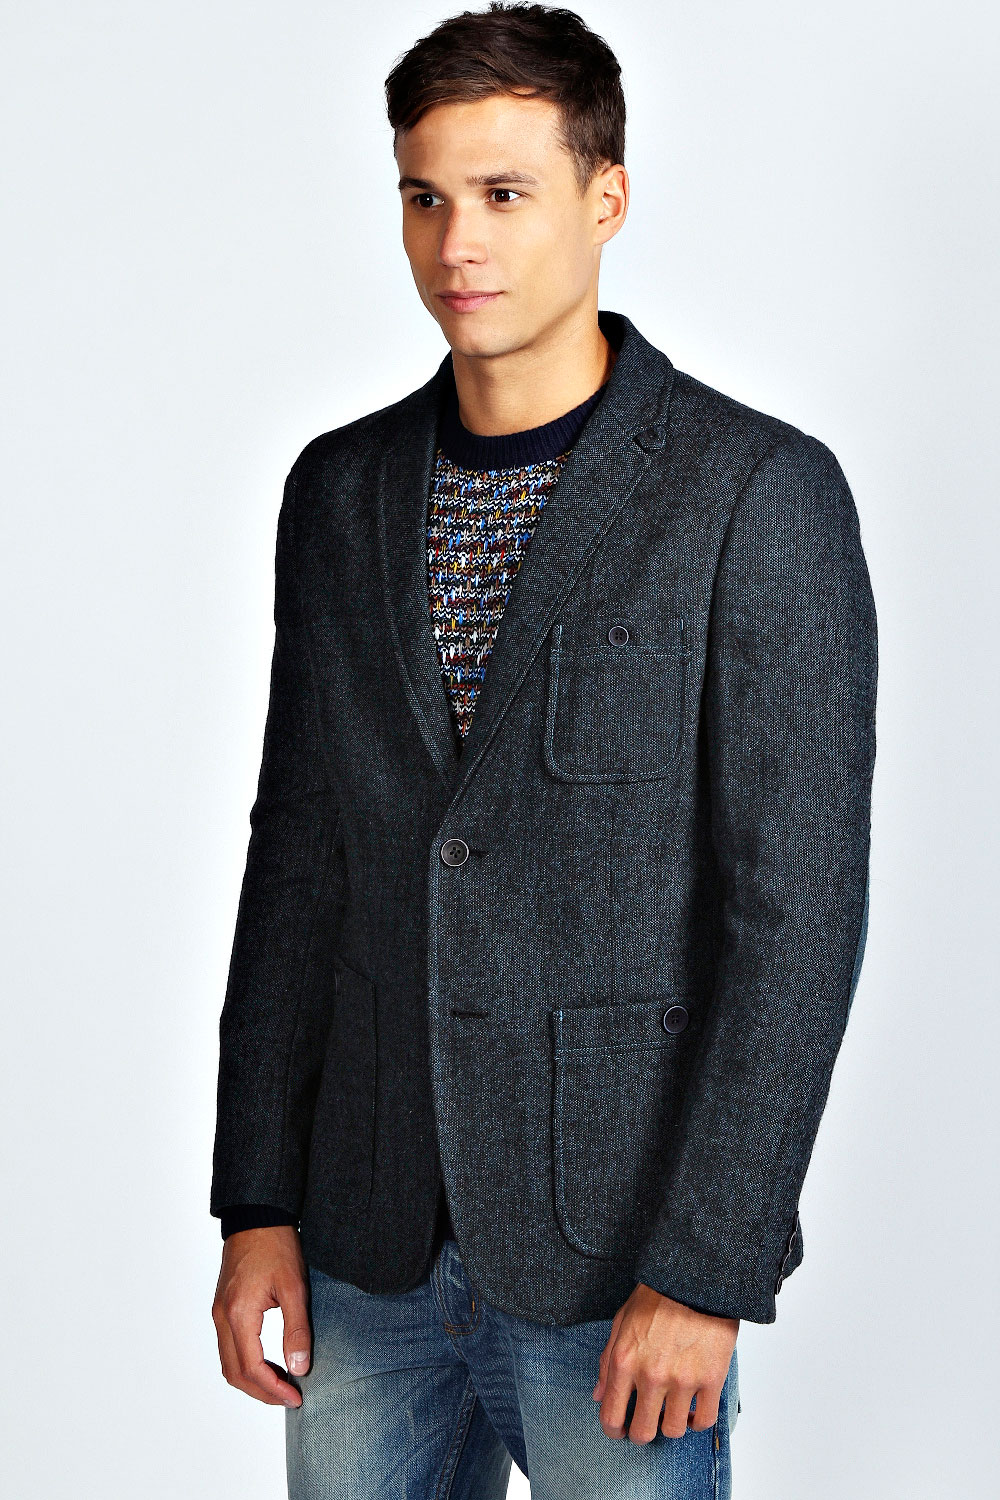 Look your best at every occasion with this fine wool blazer from the Signature Collection. Fine worsted wool has the soft hand and drape of a superior garment. Detailed with natural shoulders, scalloped facing, superior lining and center vent.